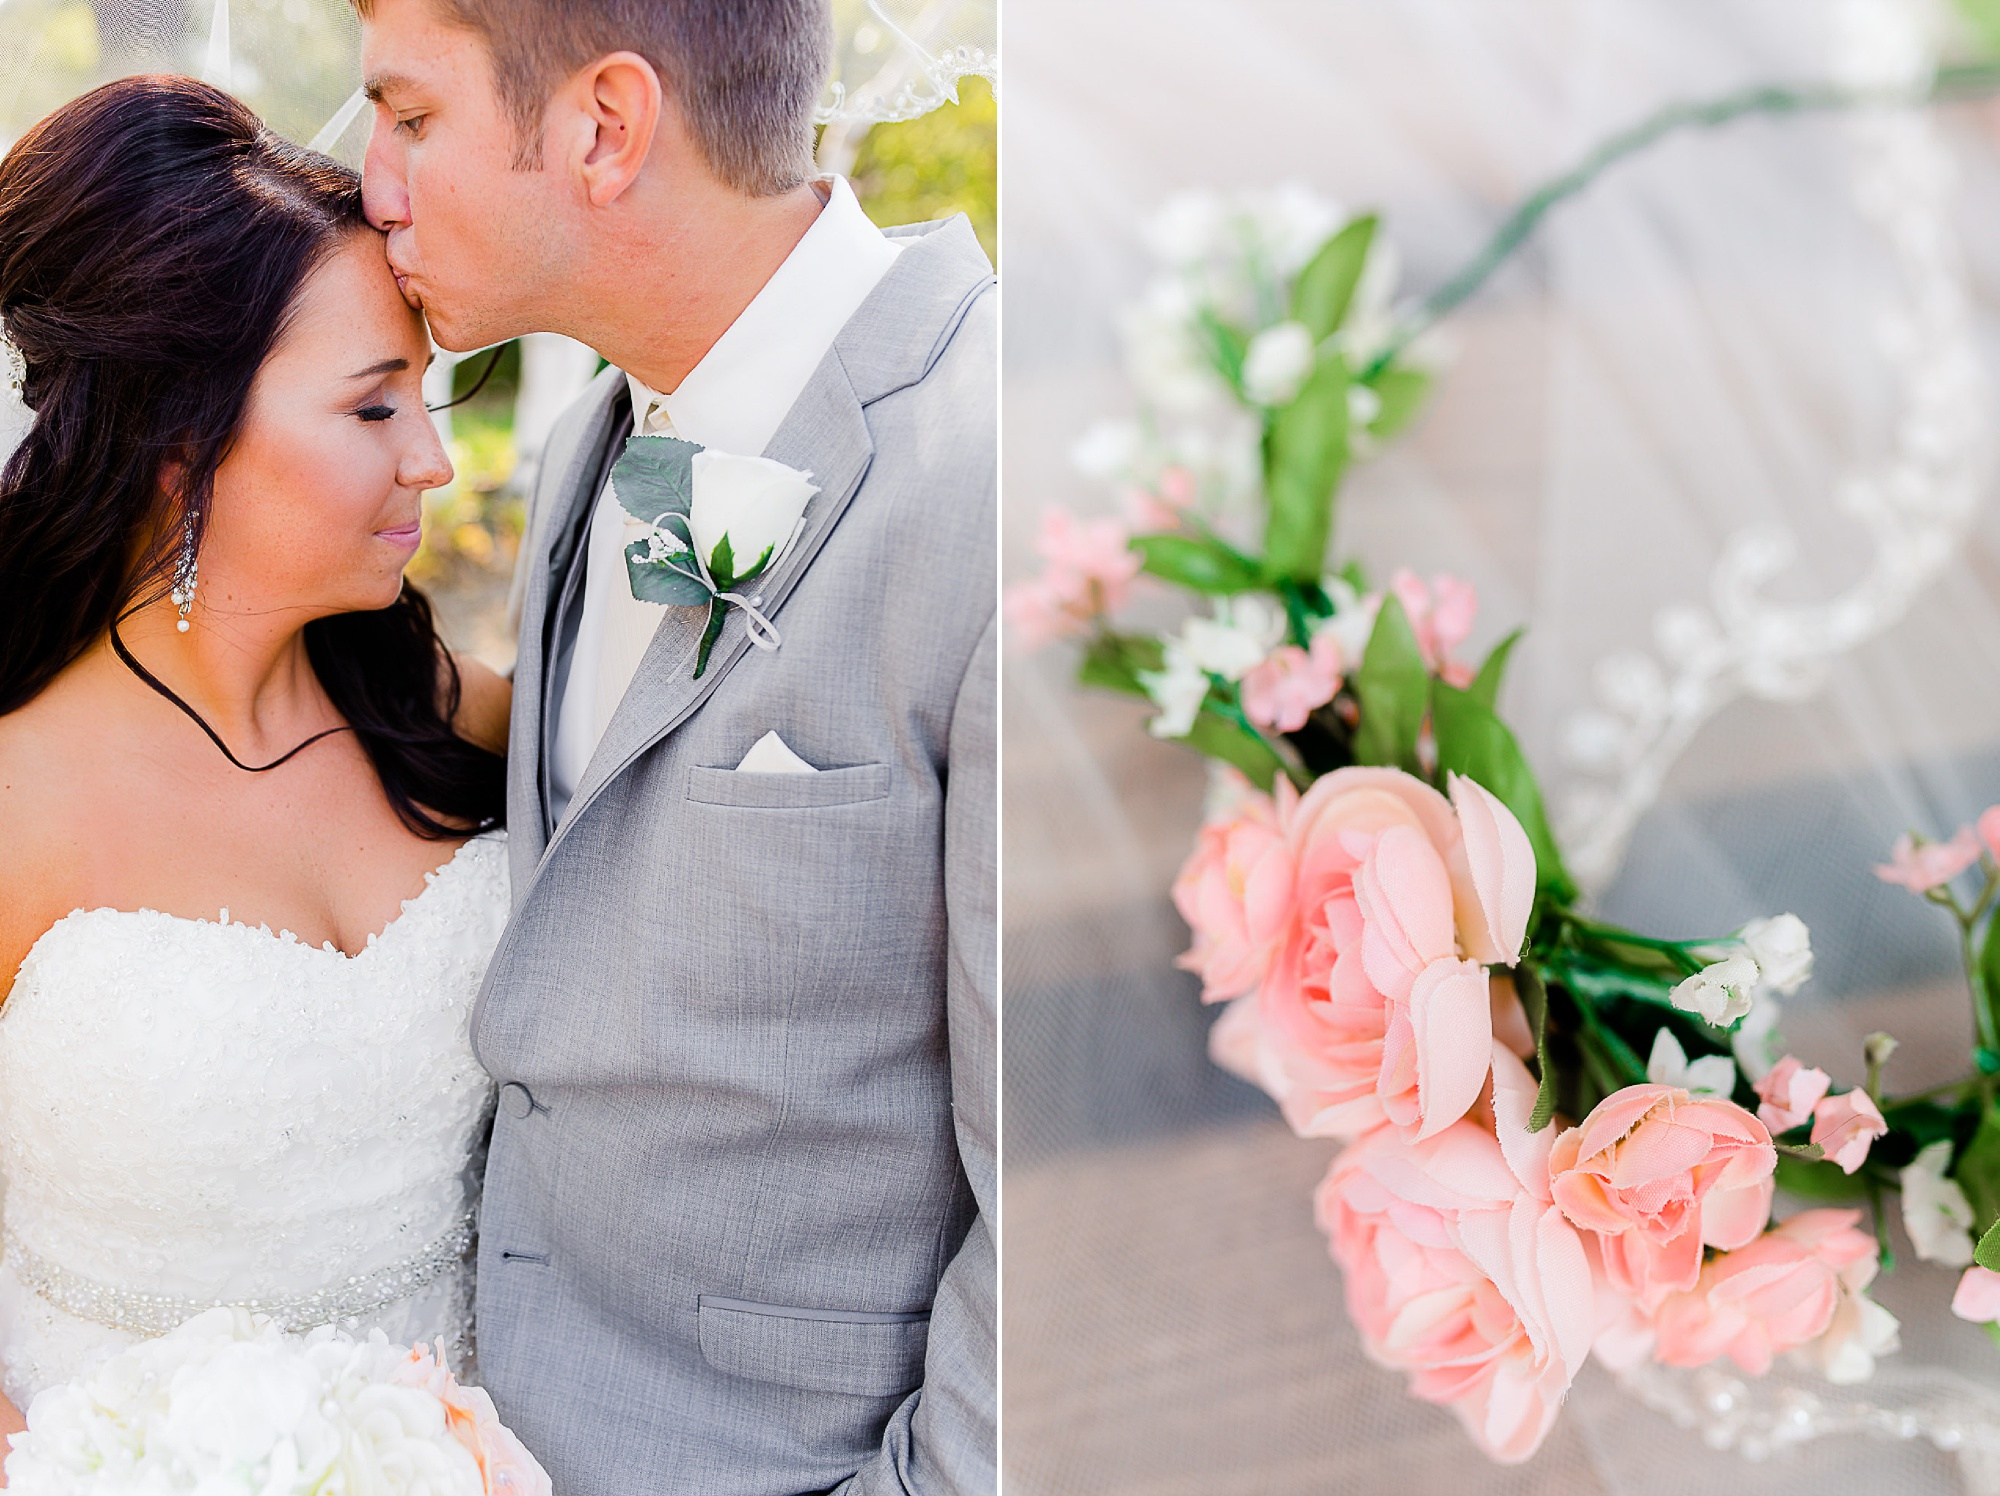 Top Wedding Images of 2016 by Amber Langerud Photography